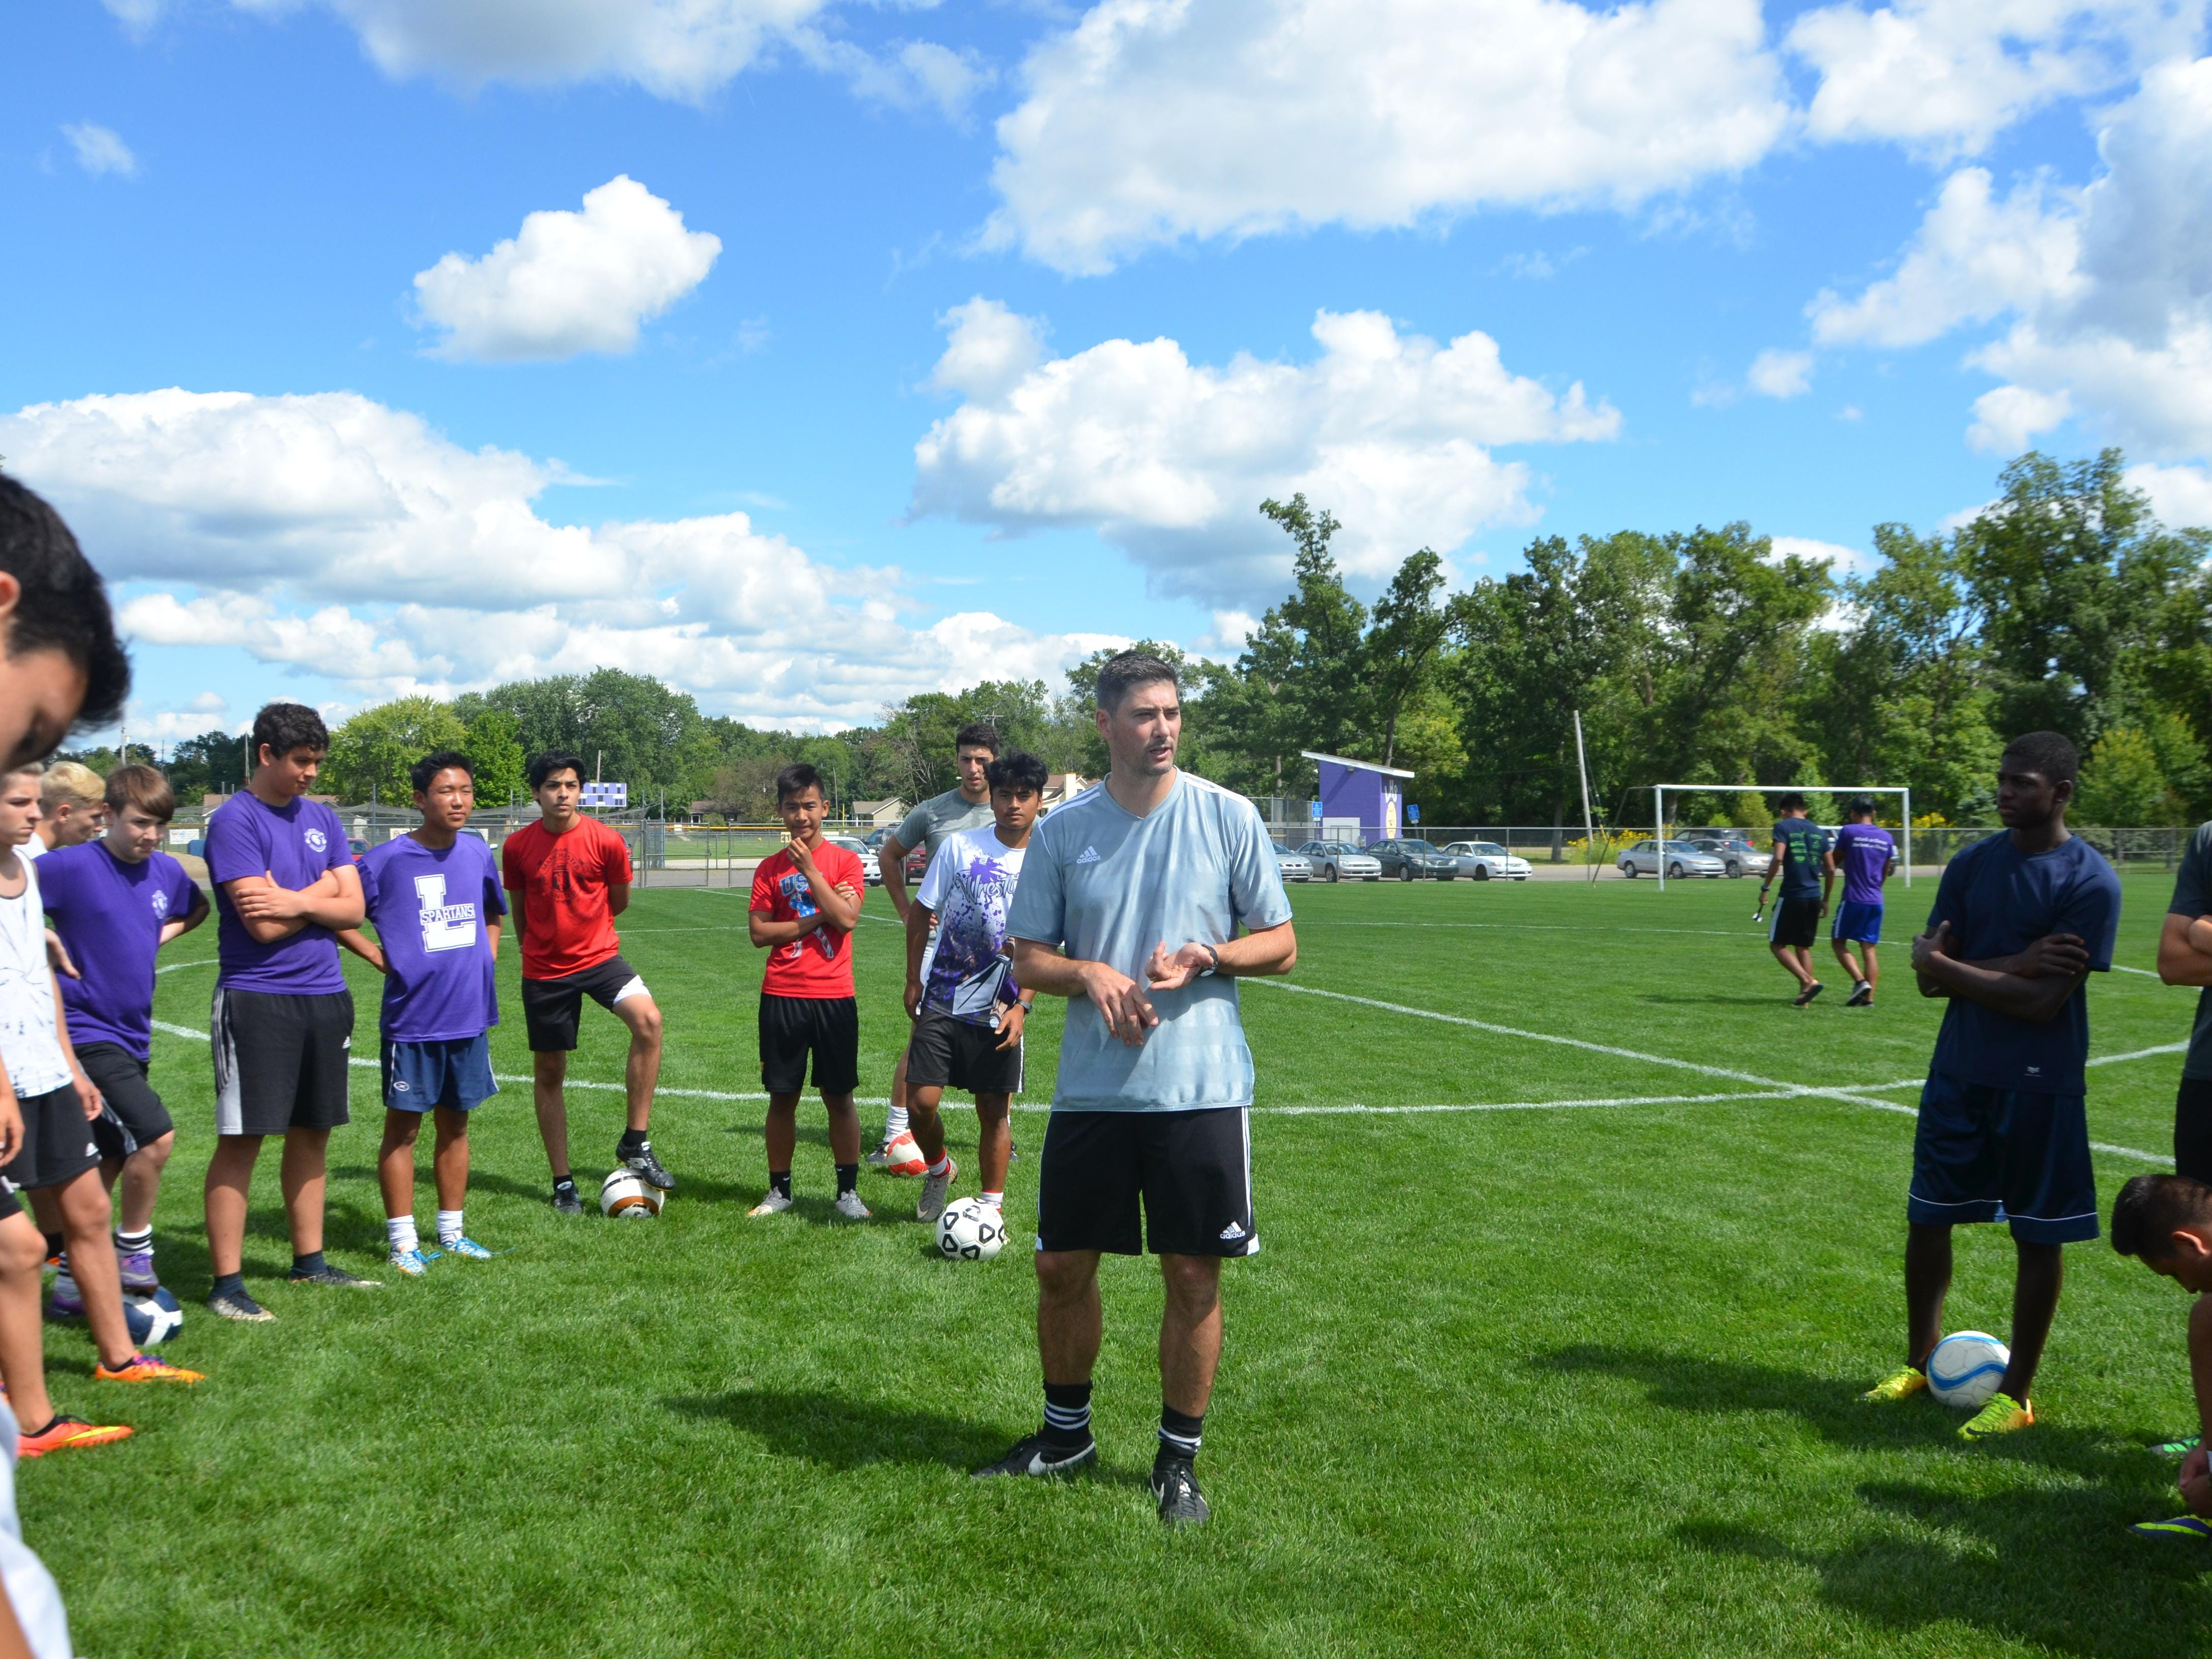 Lakeview boys' soccer coach Ciaran Byrne gives instructions during the first practice of the season on Wednesday.